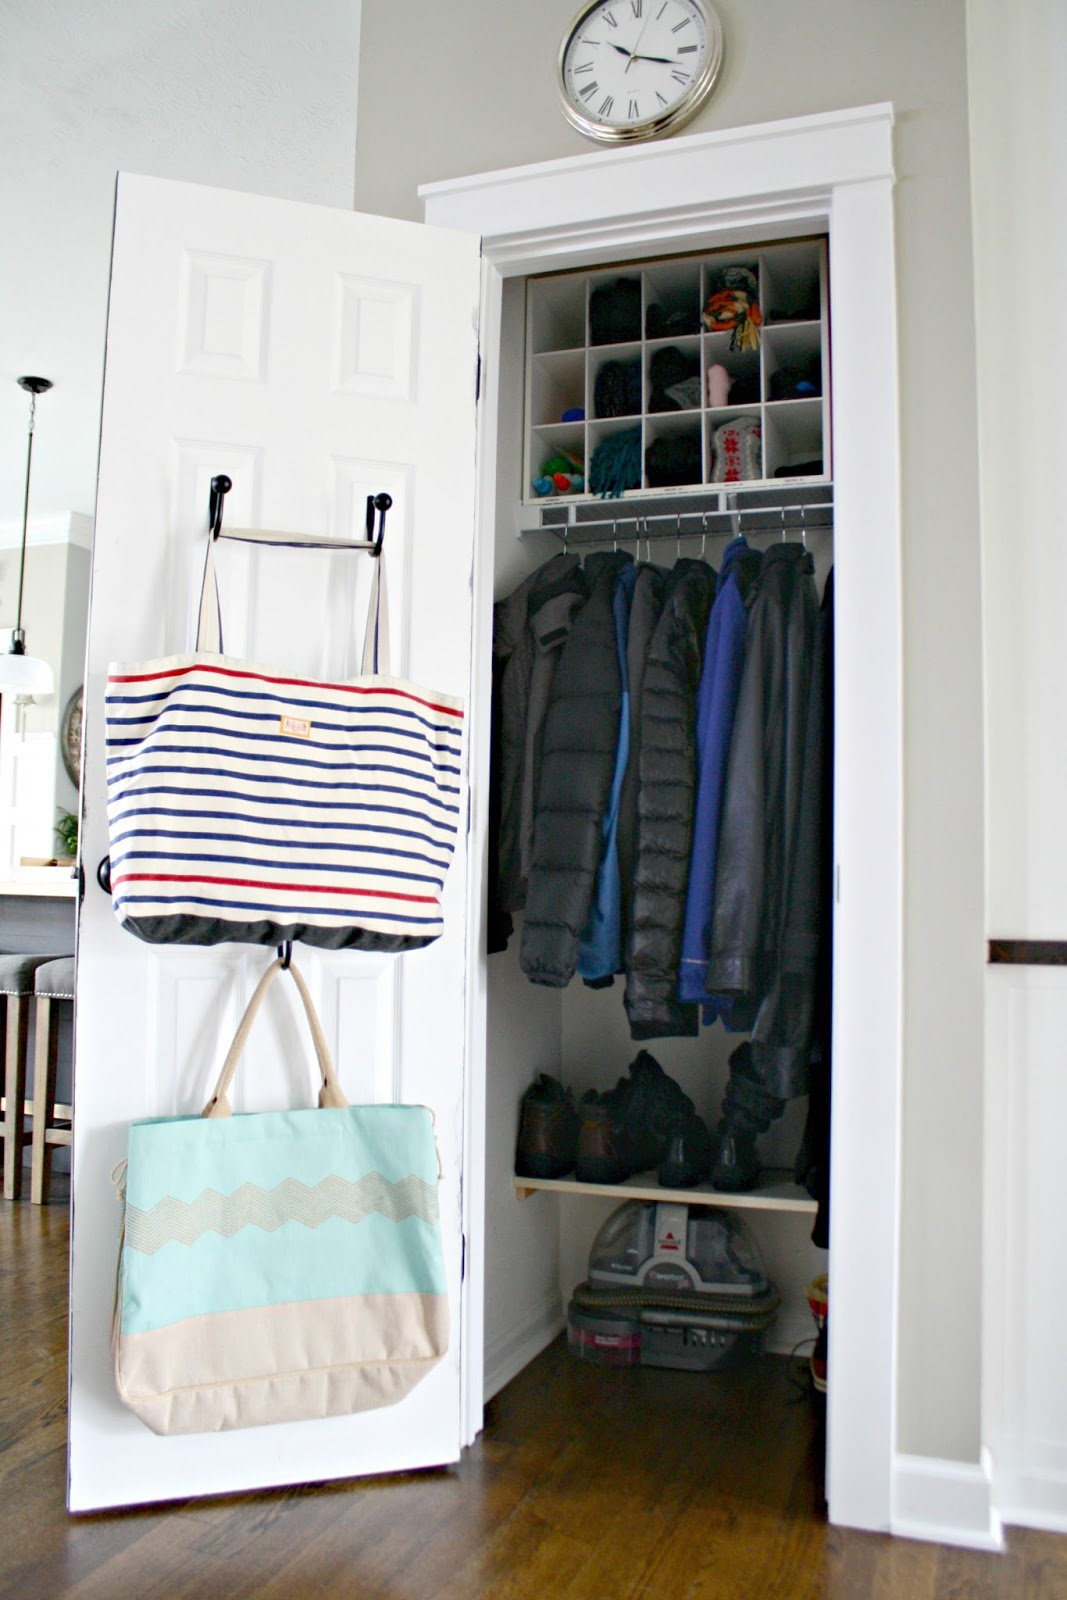 Things In A Foyer Closet Crossword : My tricks for an organized coat closet from thrifty decor